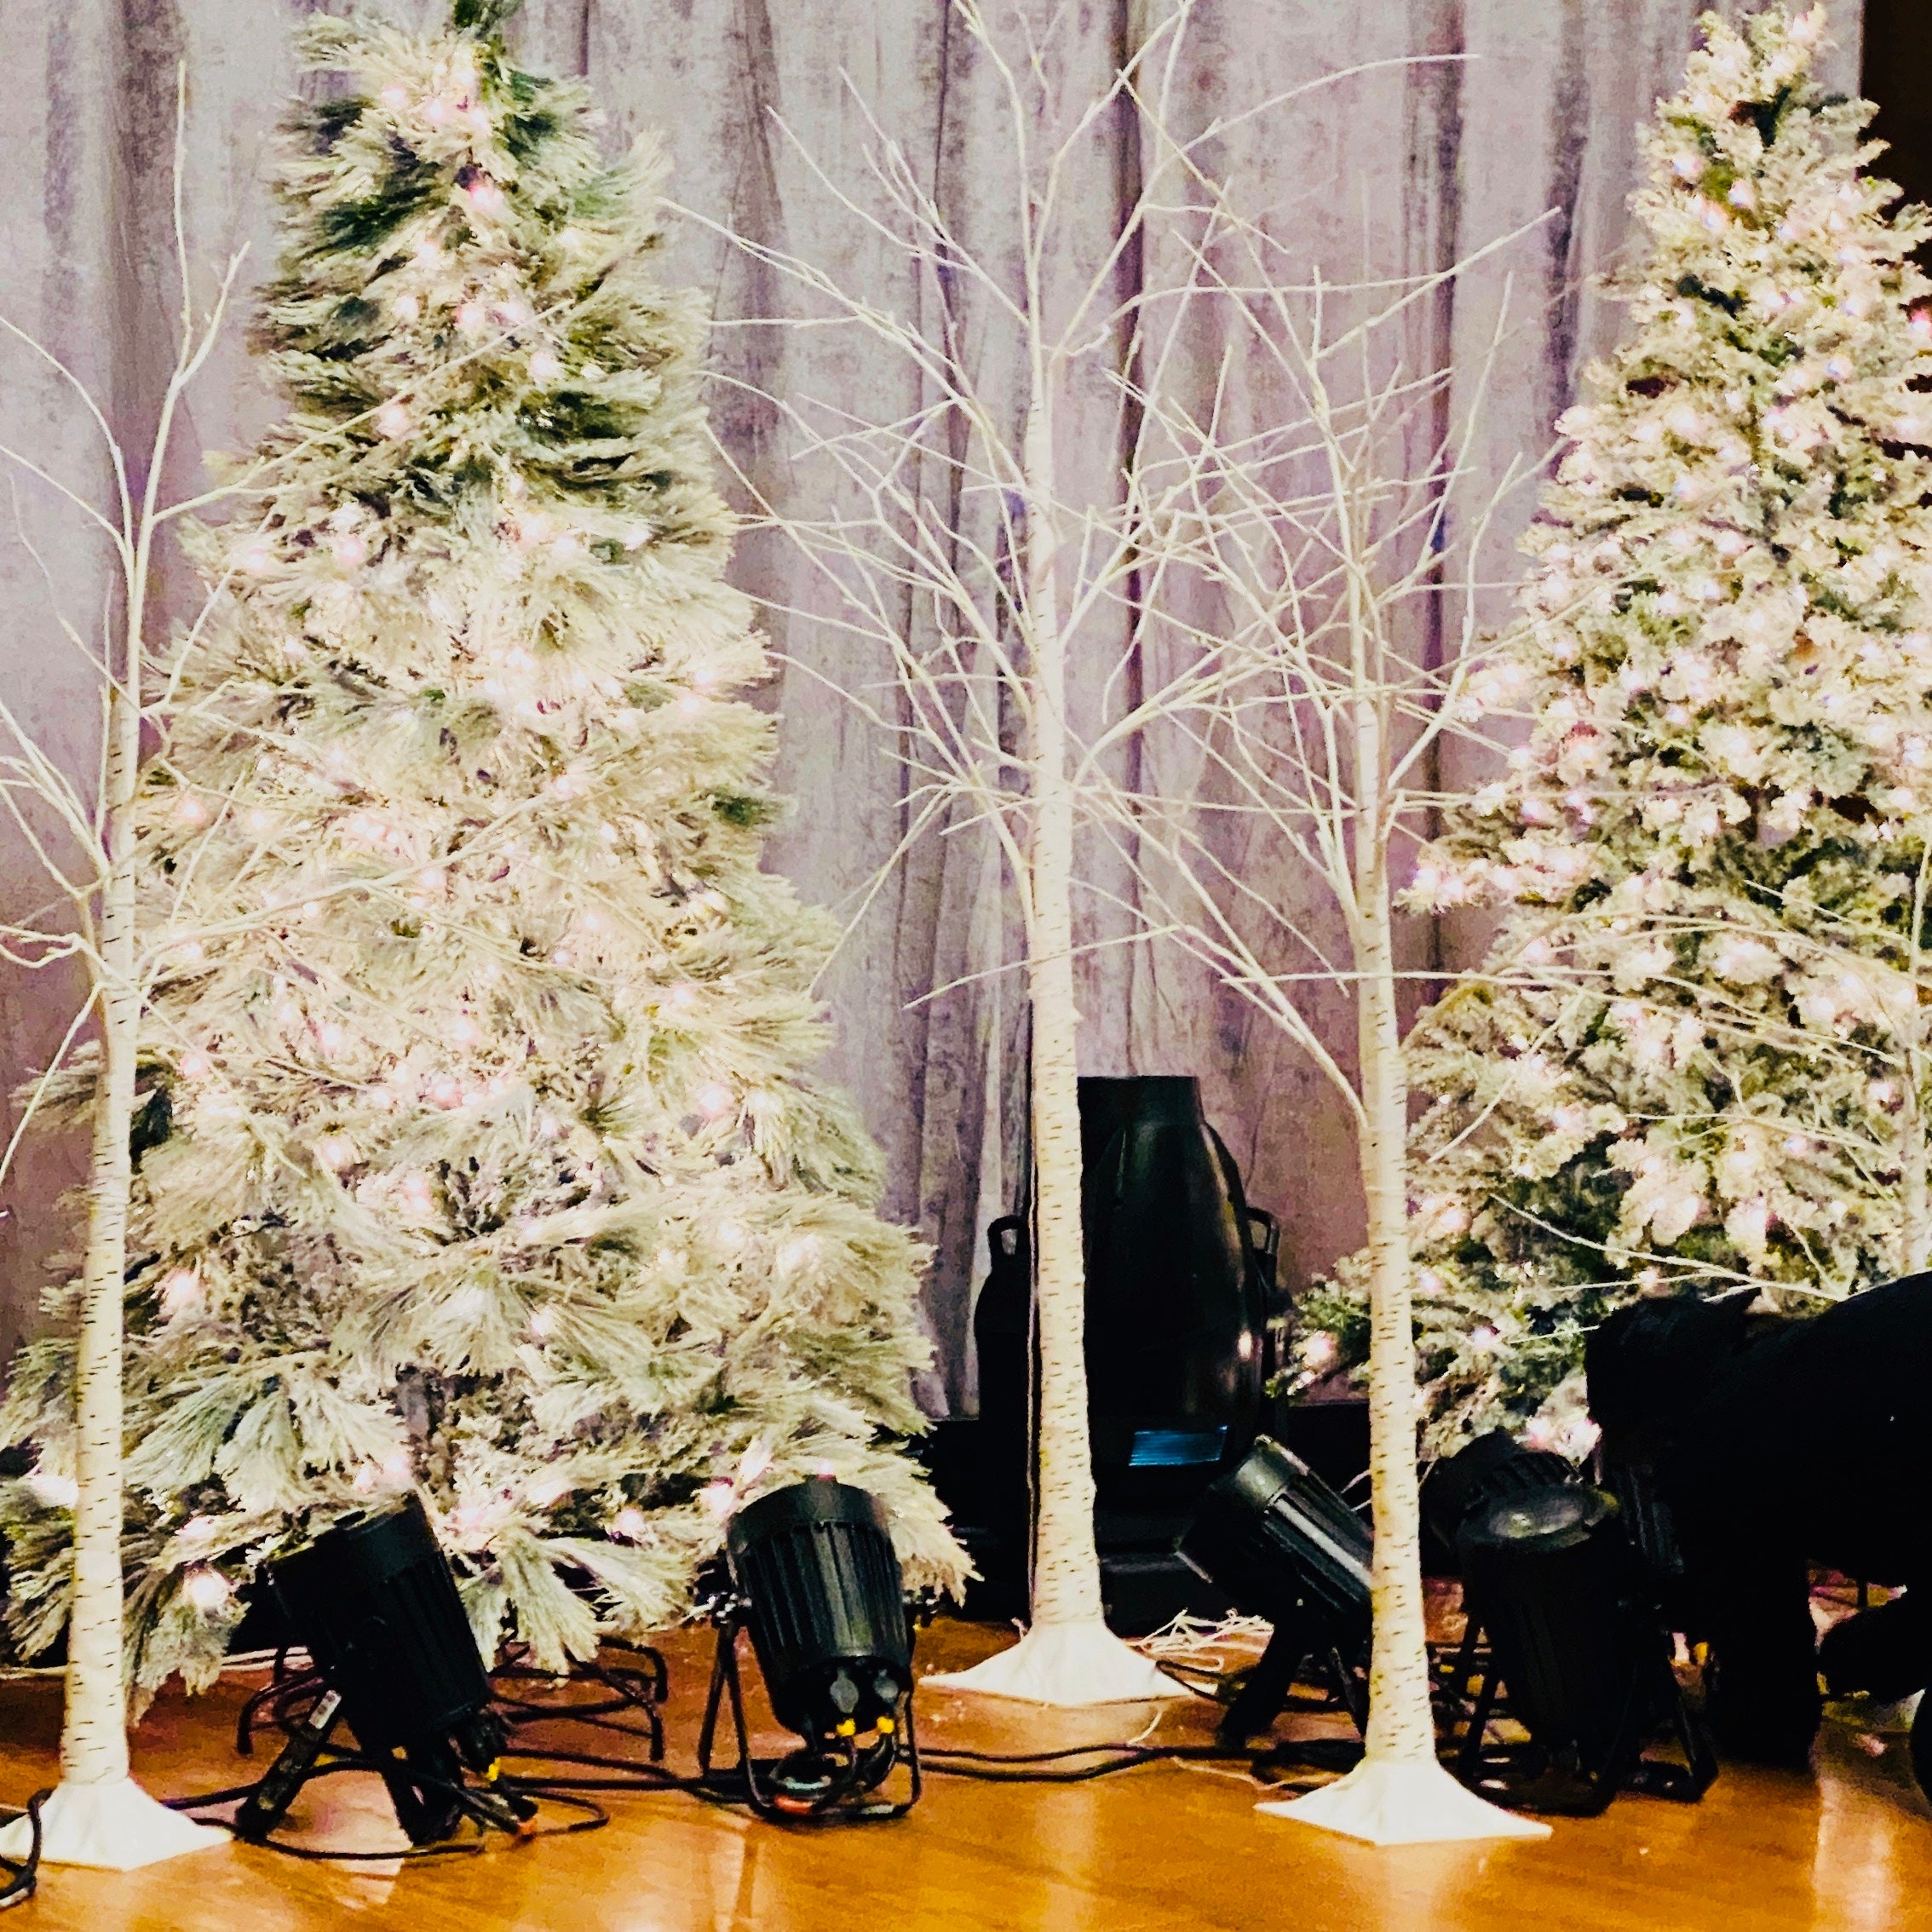 Flocked Christmas trees and illuminated birch trees on stage at commercial event